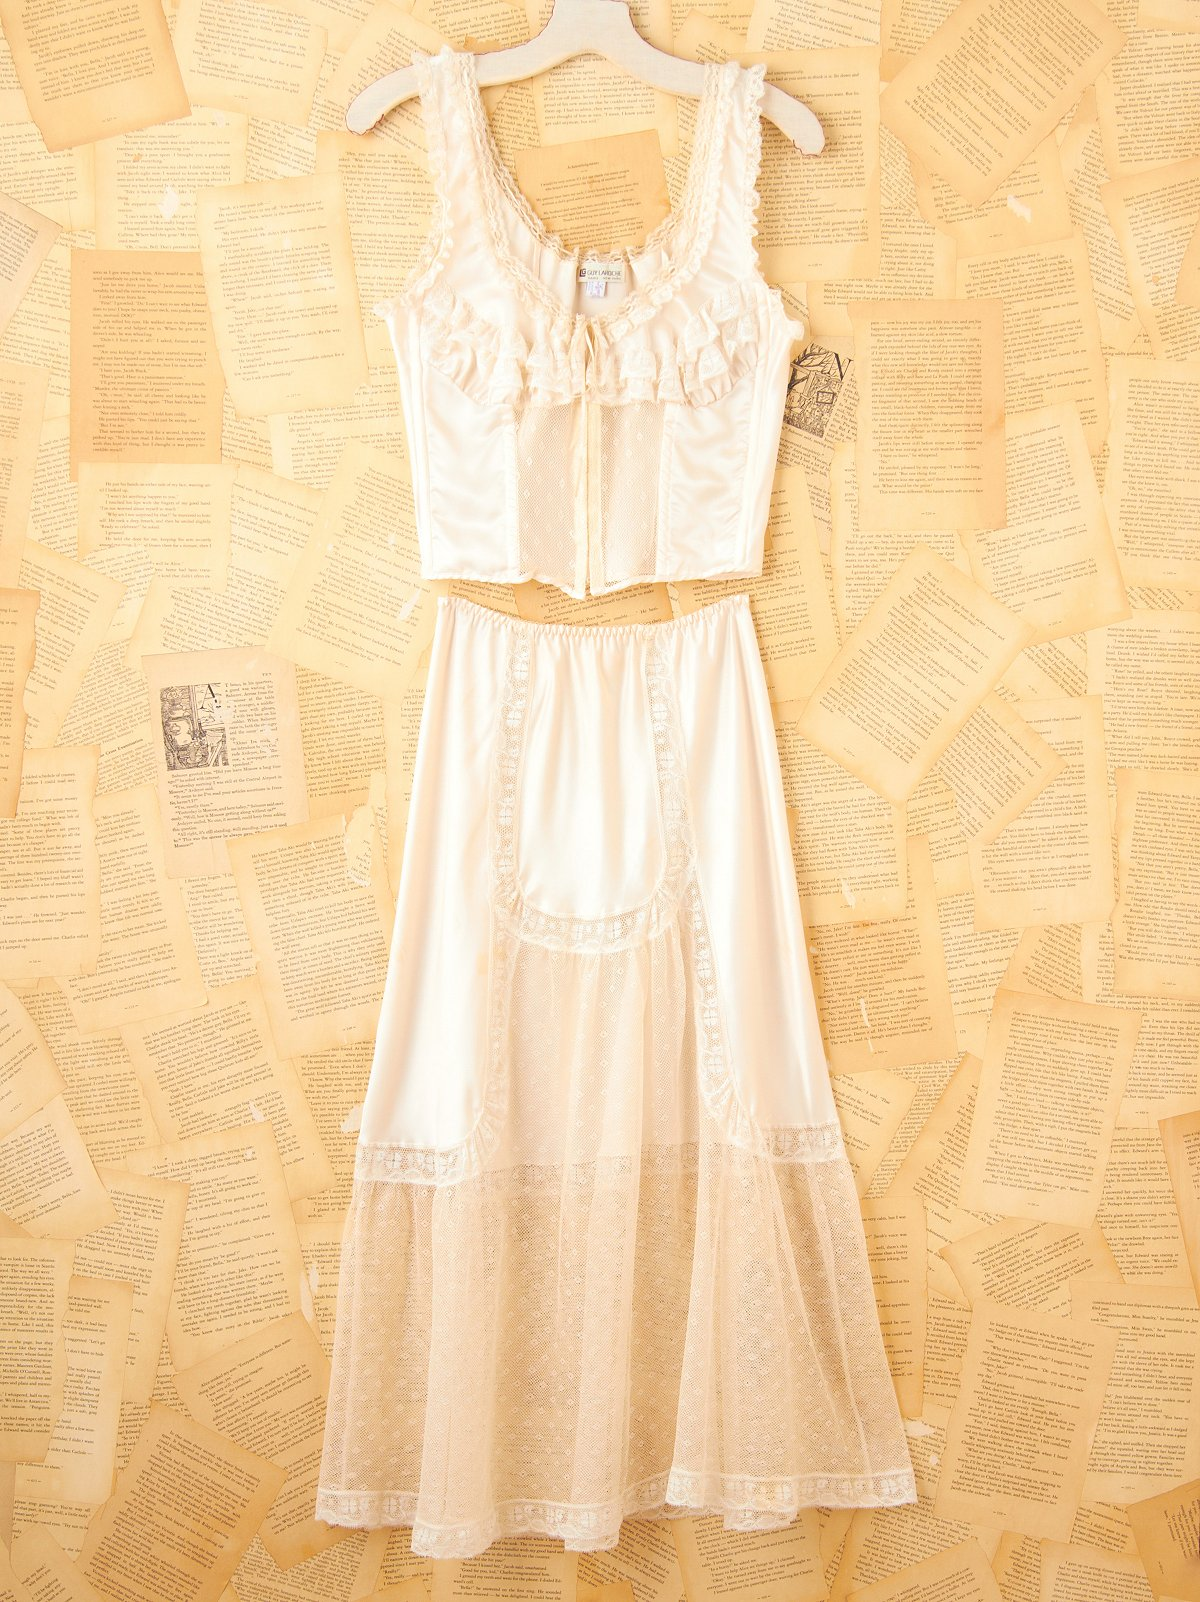 Vintage 1980s Guy Laroche Dress